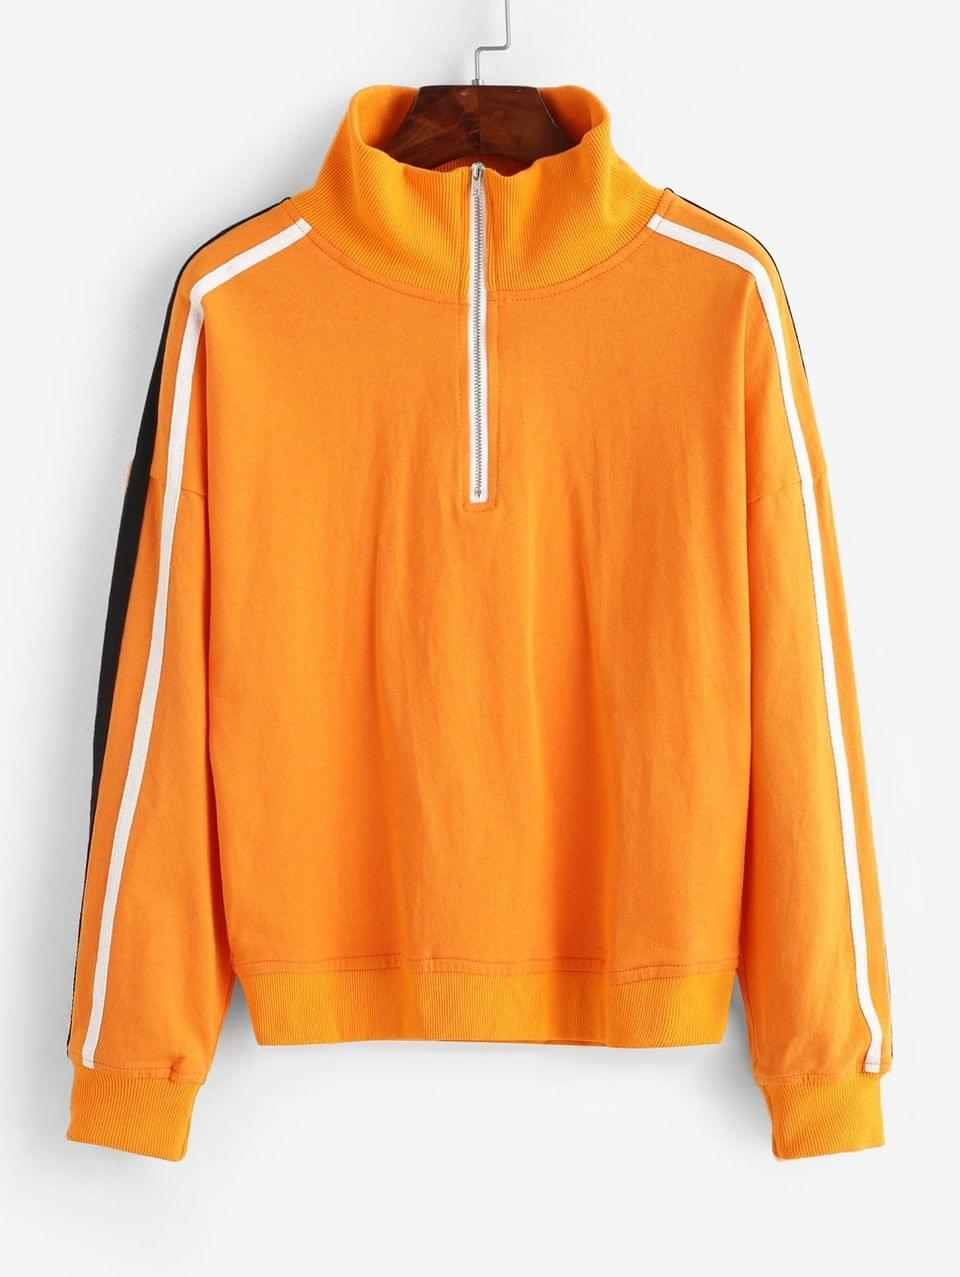 Women's Side Striped Half Zip Loose Sweatshirt - Pumpkin Orange L